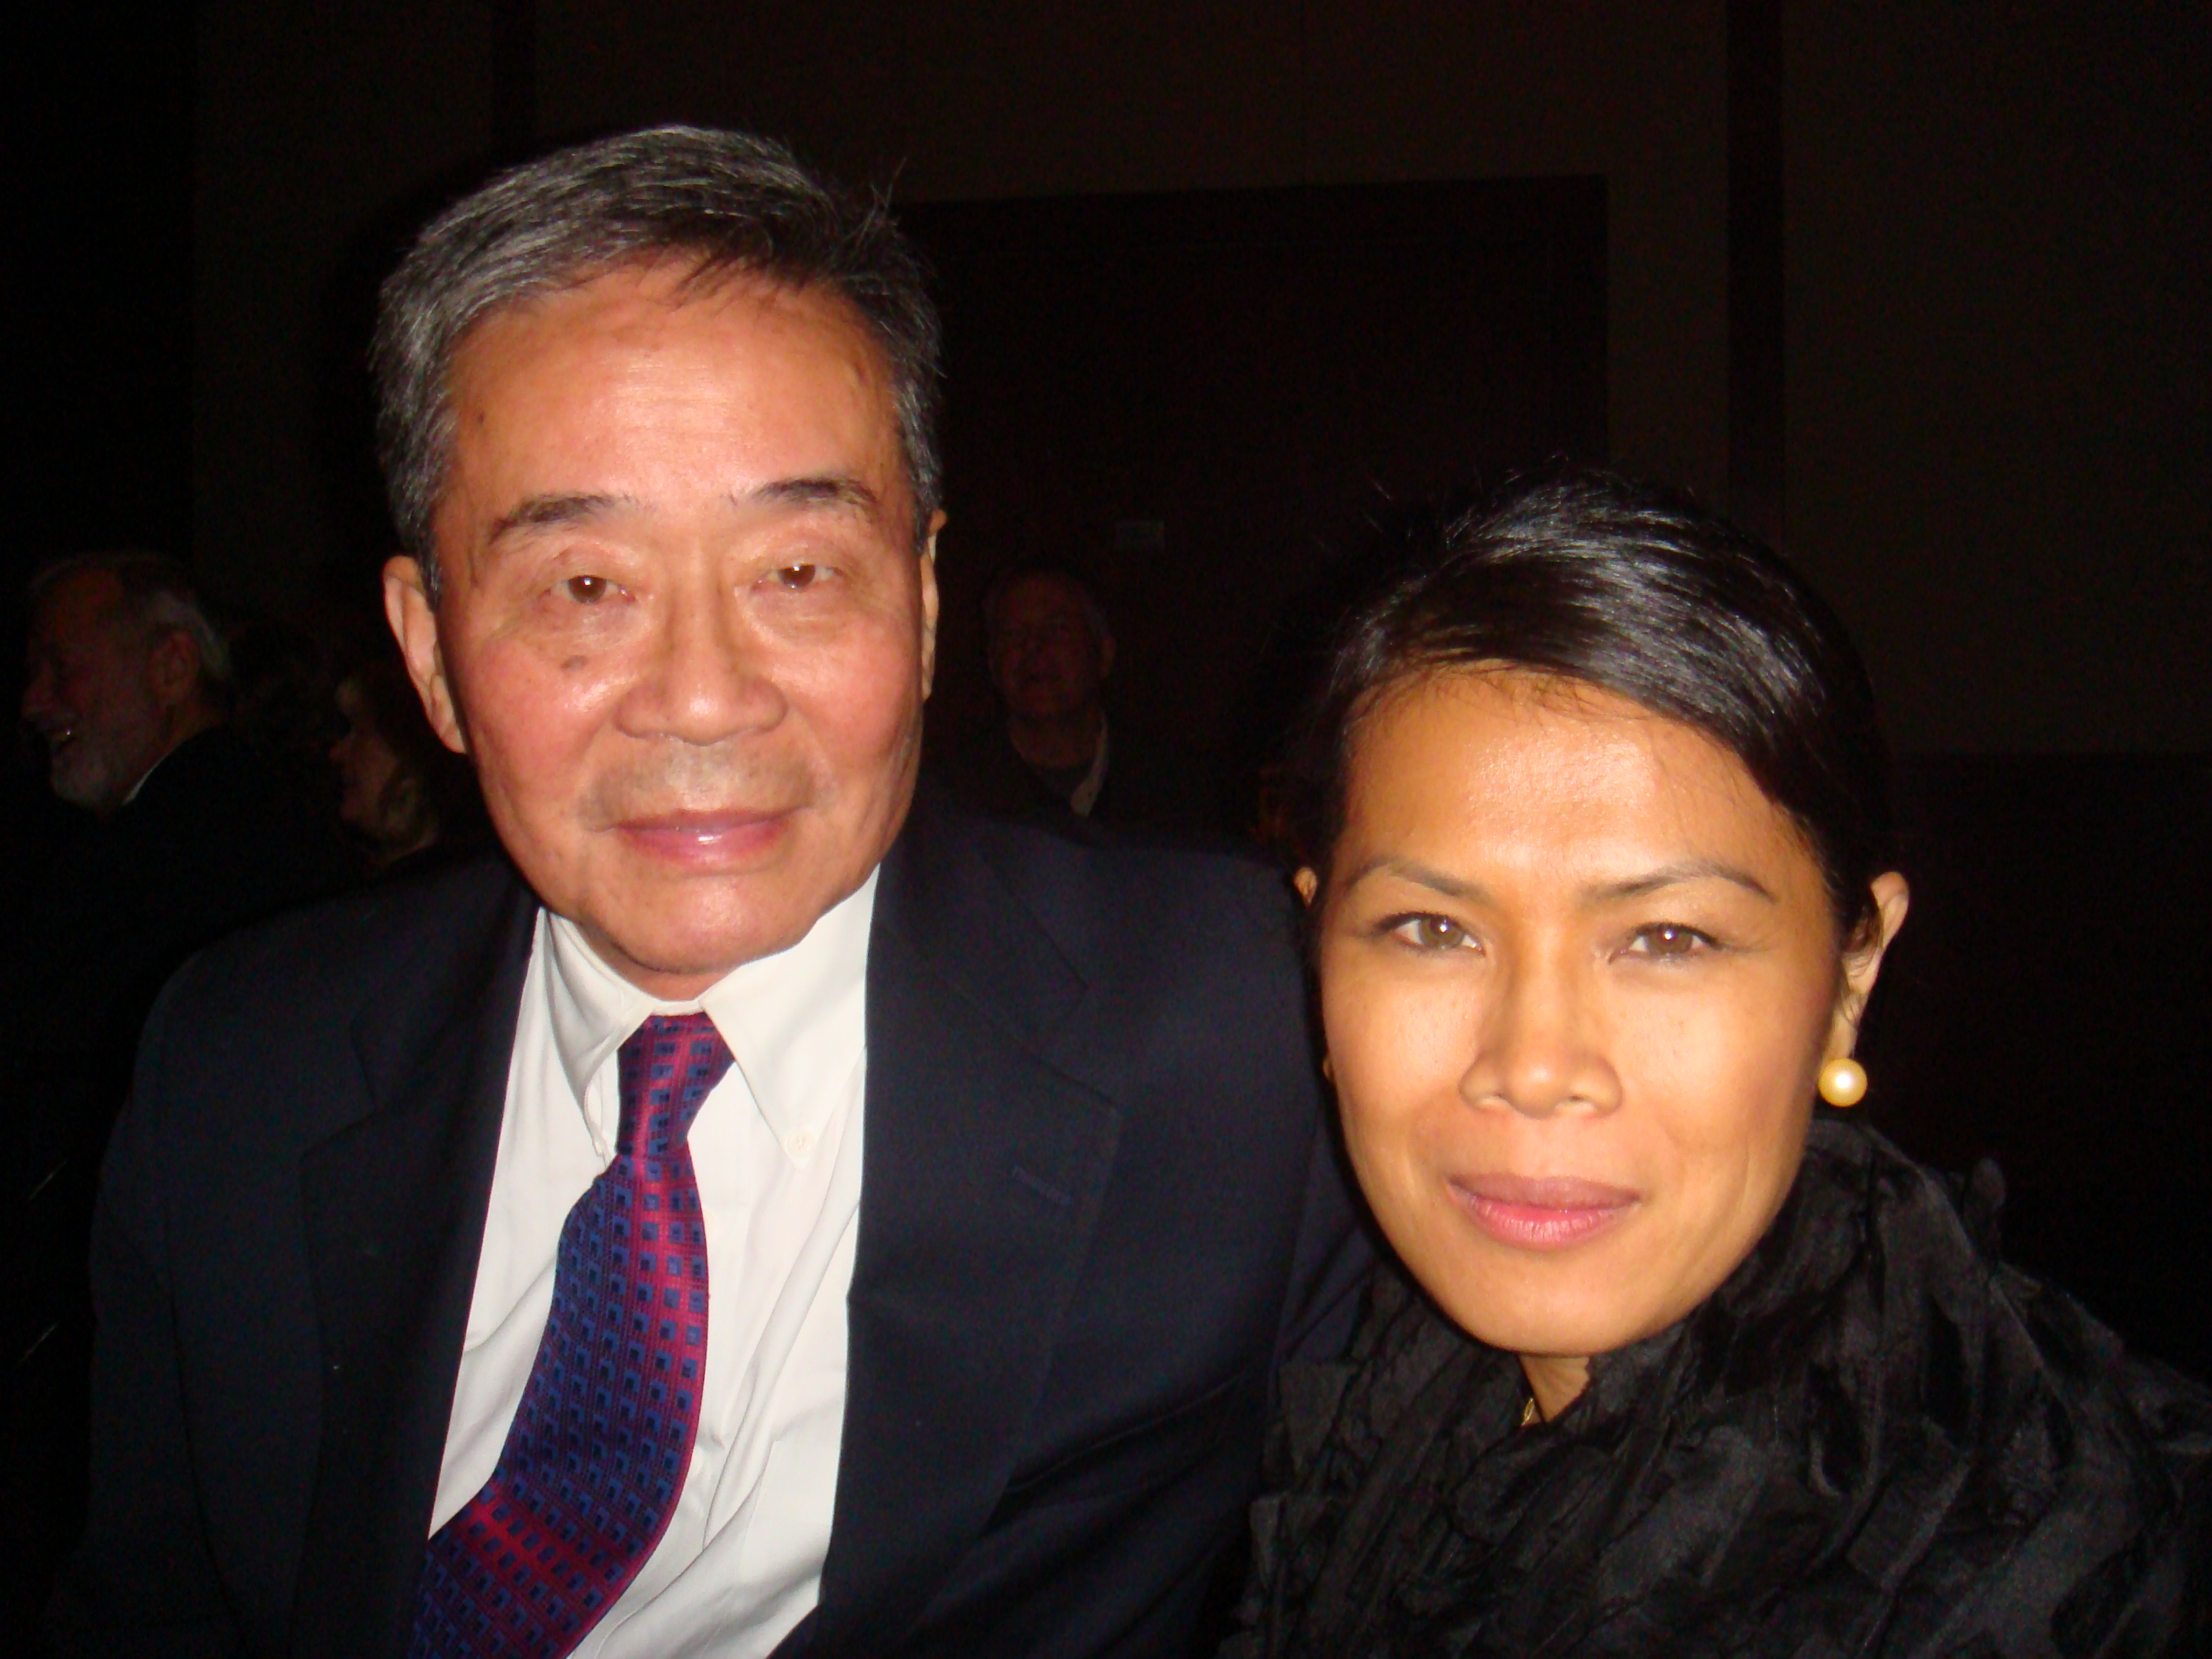 Theary Seng with Harry Wu, NYC 17 Nov. 2010